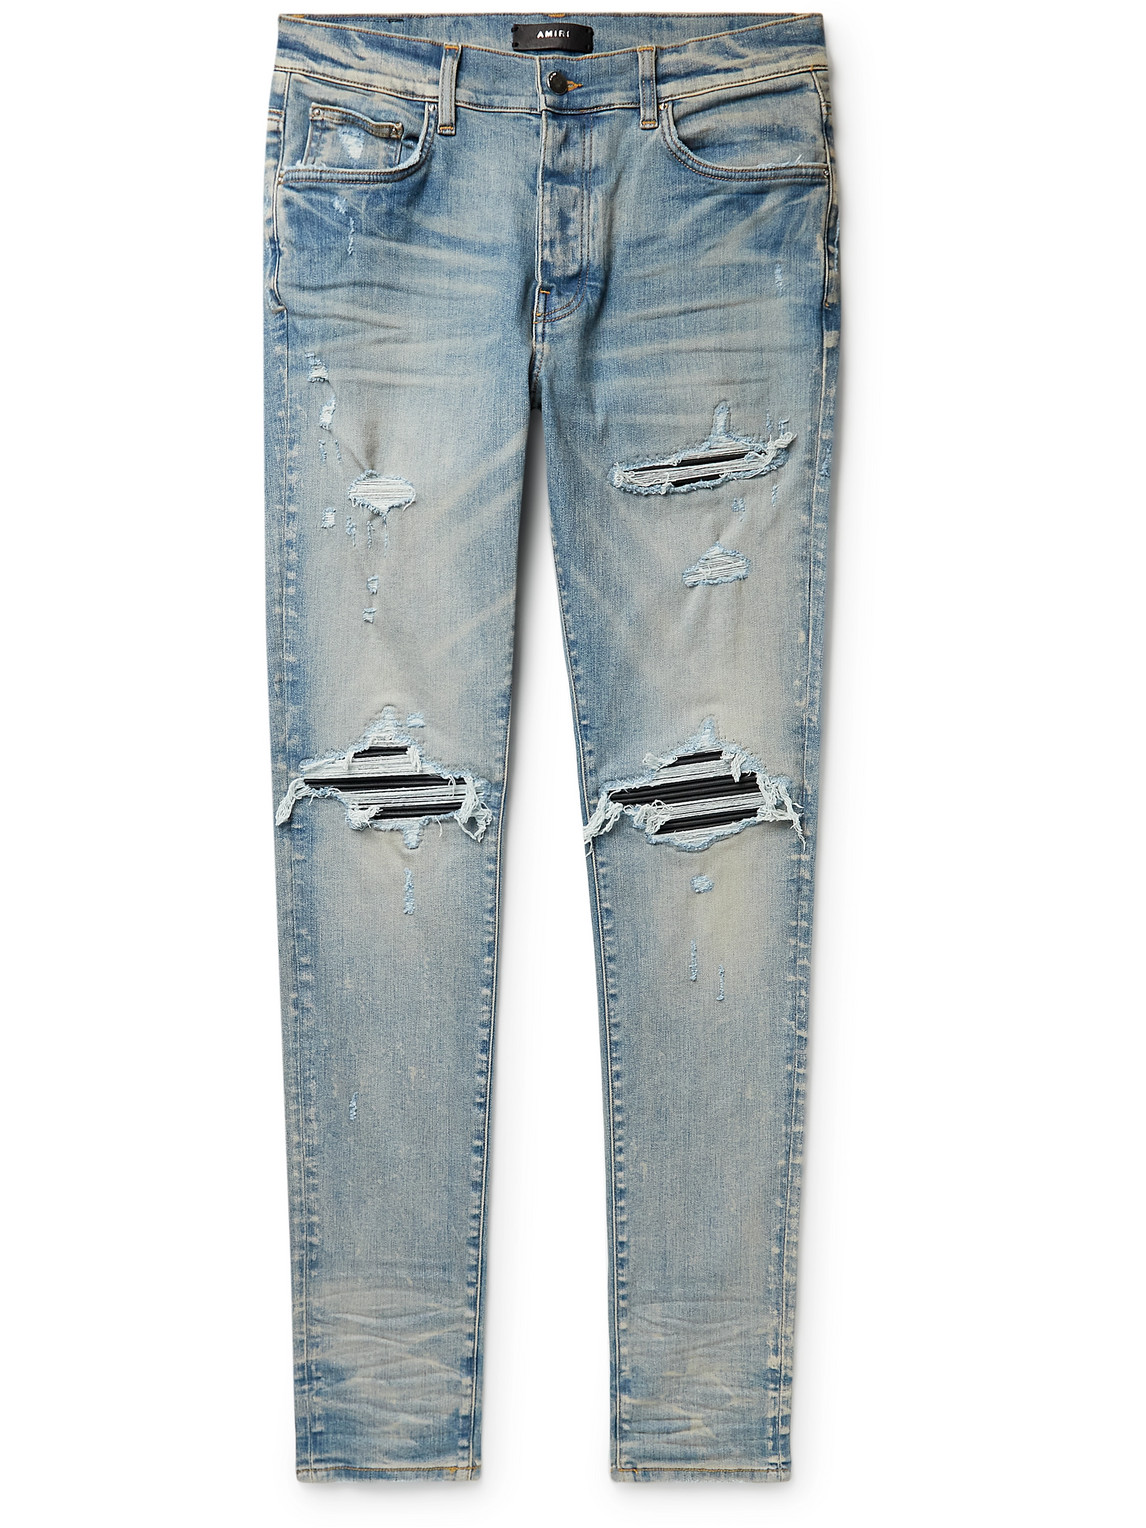 MX1 Skinny-Fit Panelled Distressed Jeans